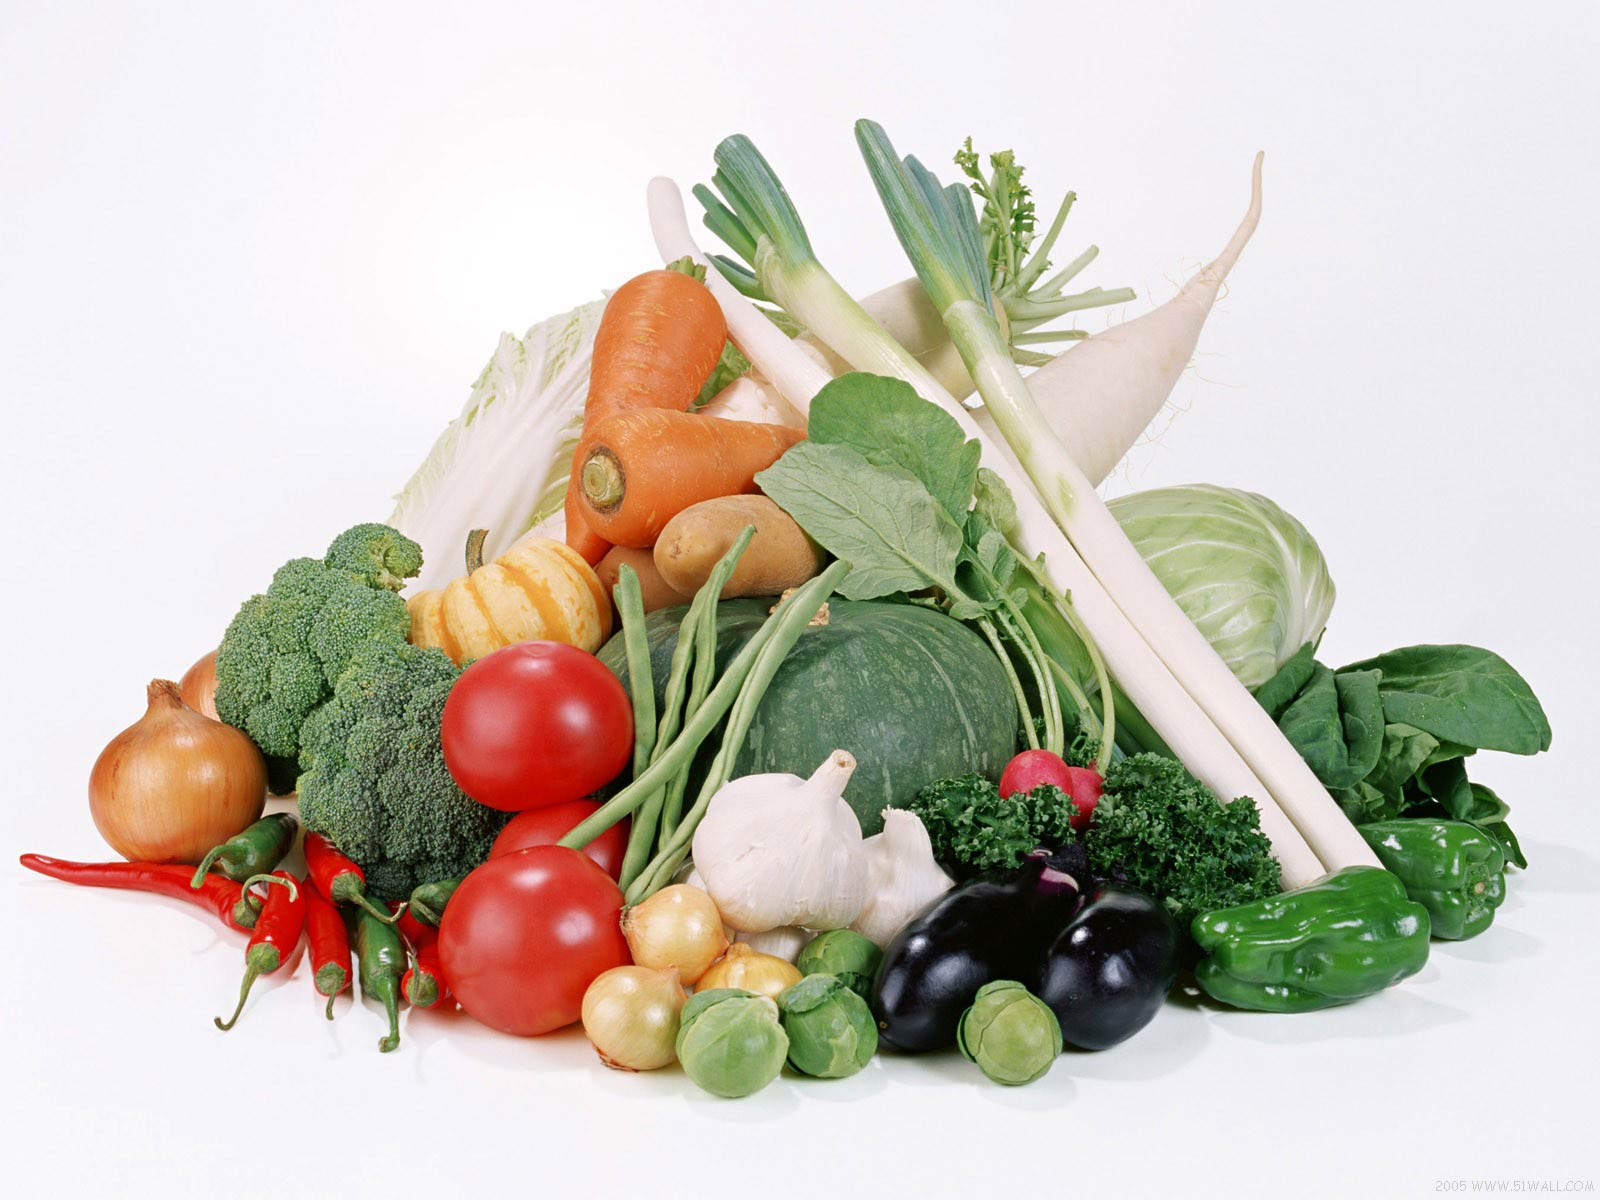 Foods to avoid when you have eczema, Part 2 – Vegetables